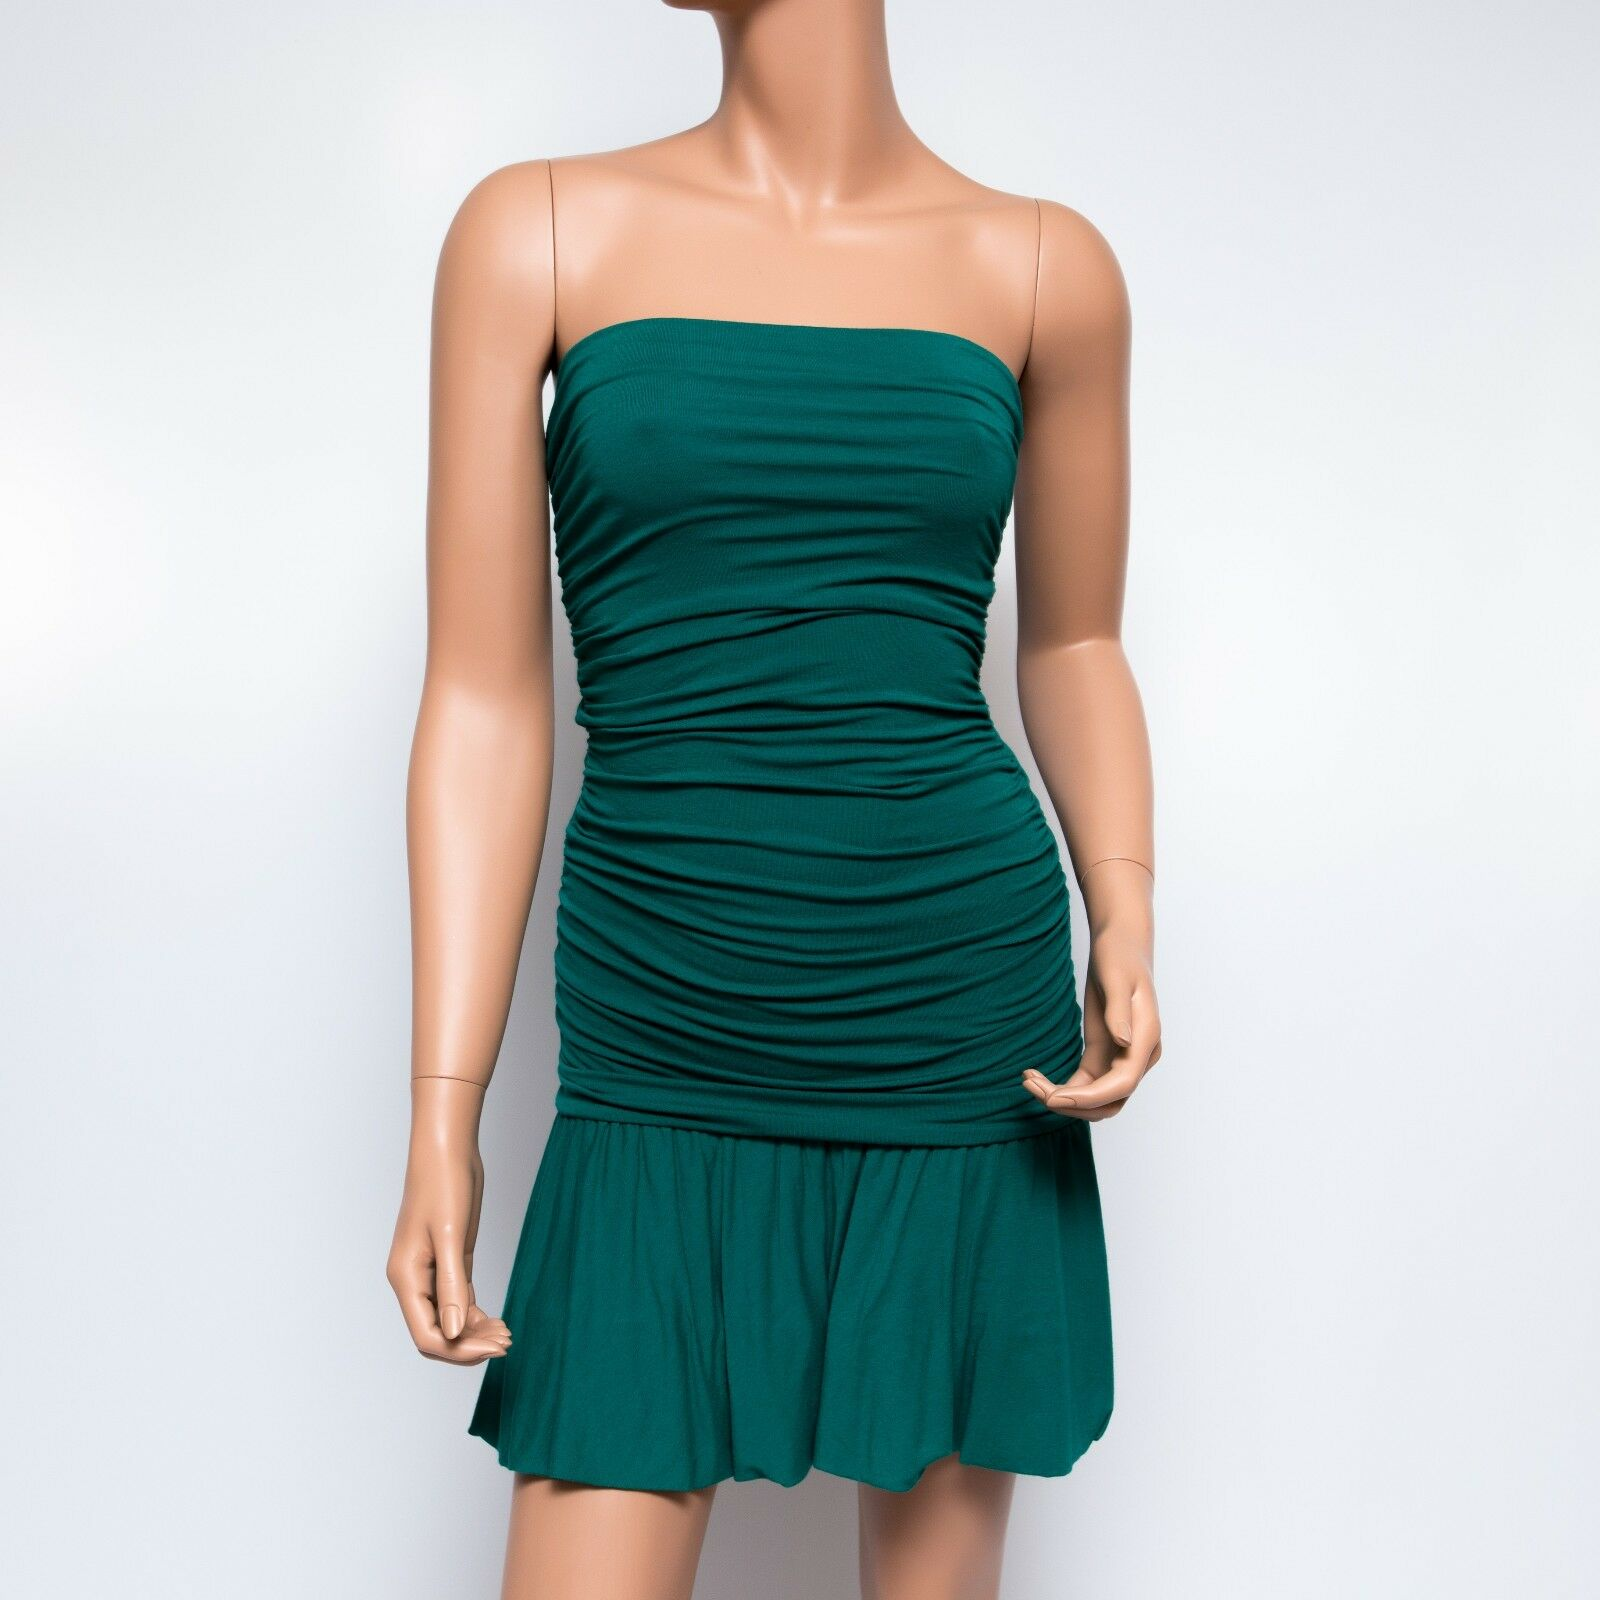 BCBGmaxazria Emerald Grün Strapless Ruched Bodycon Mini Dress  XS